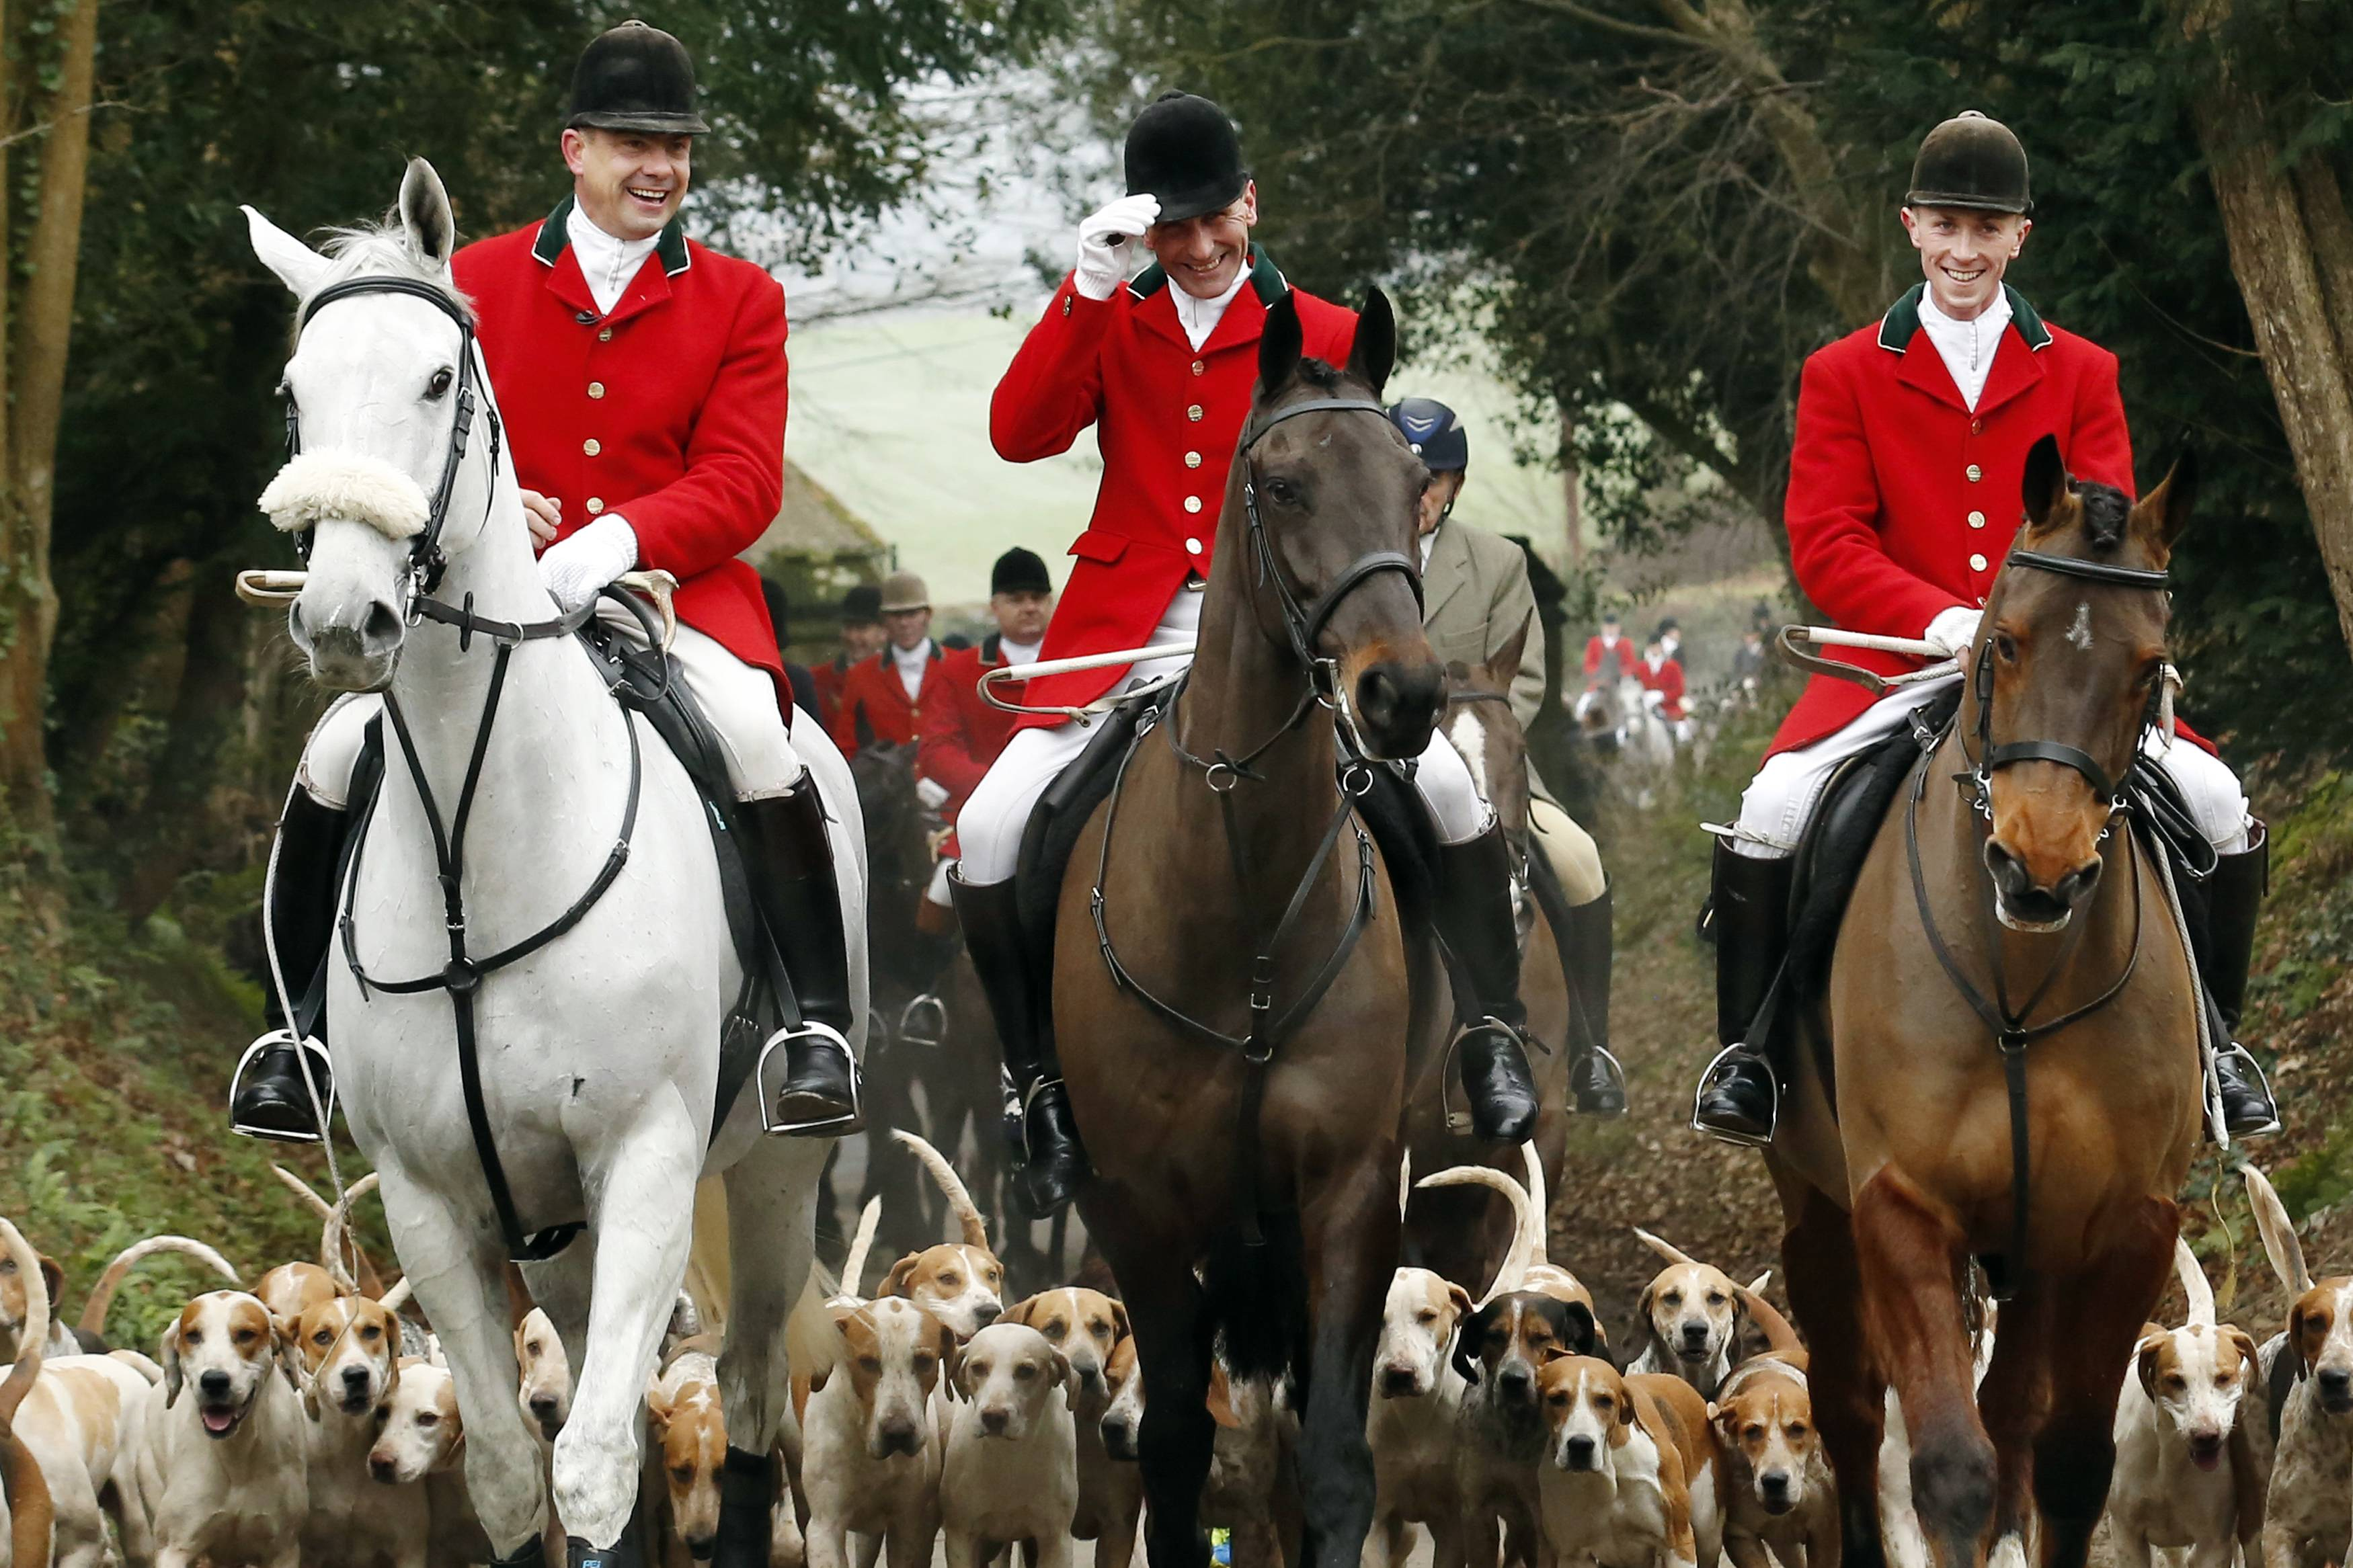 80% of Brits oppose fox hunting with hounds.